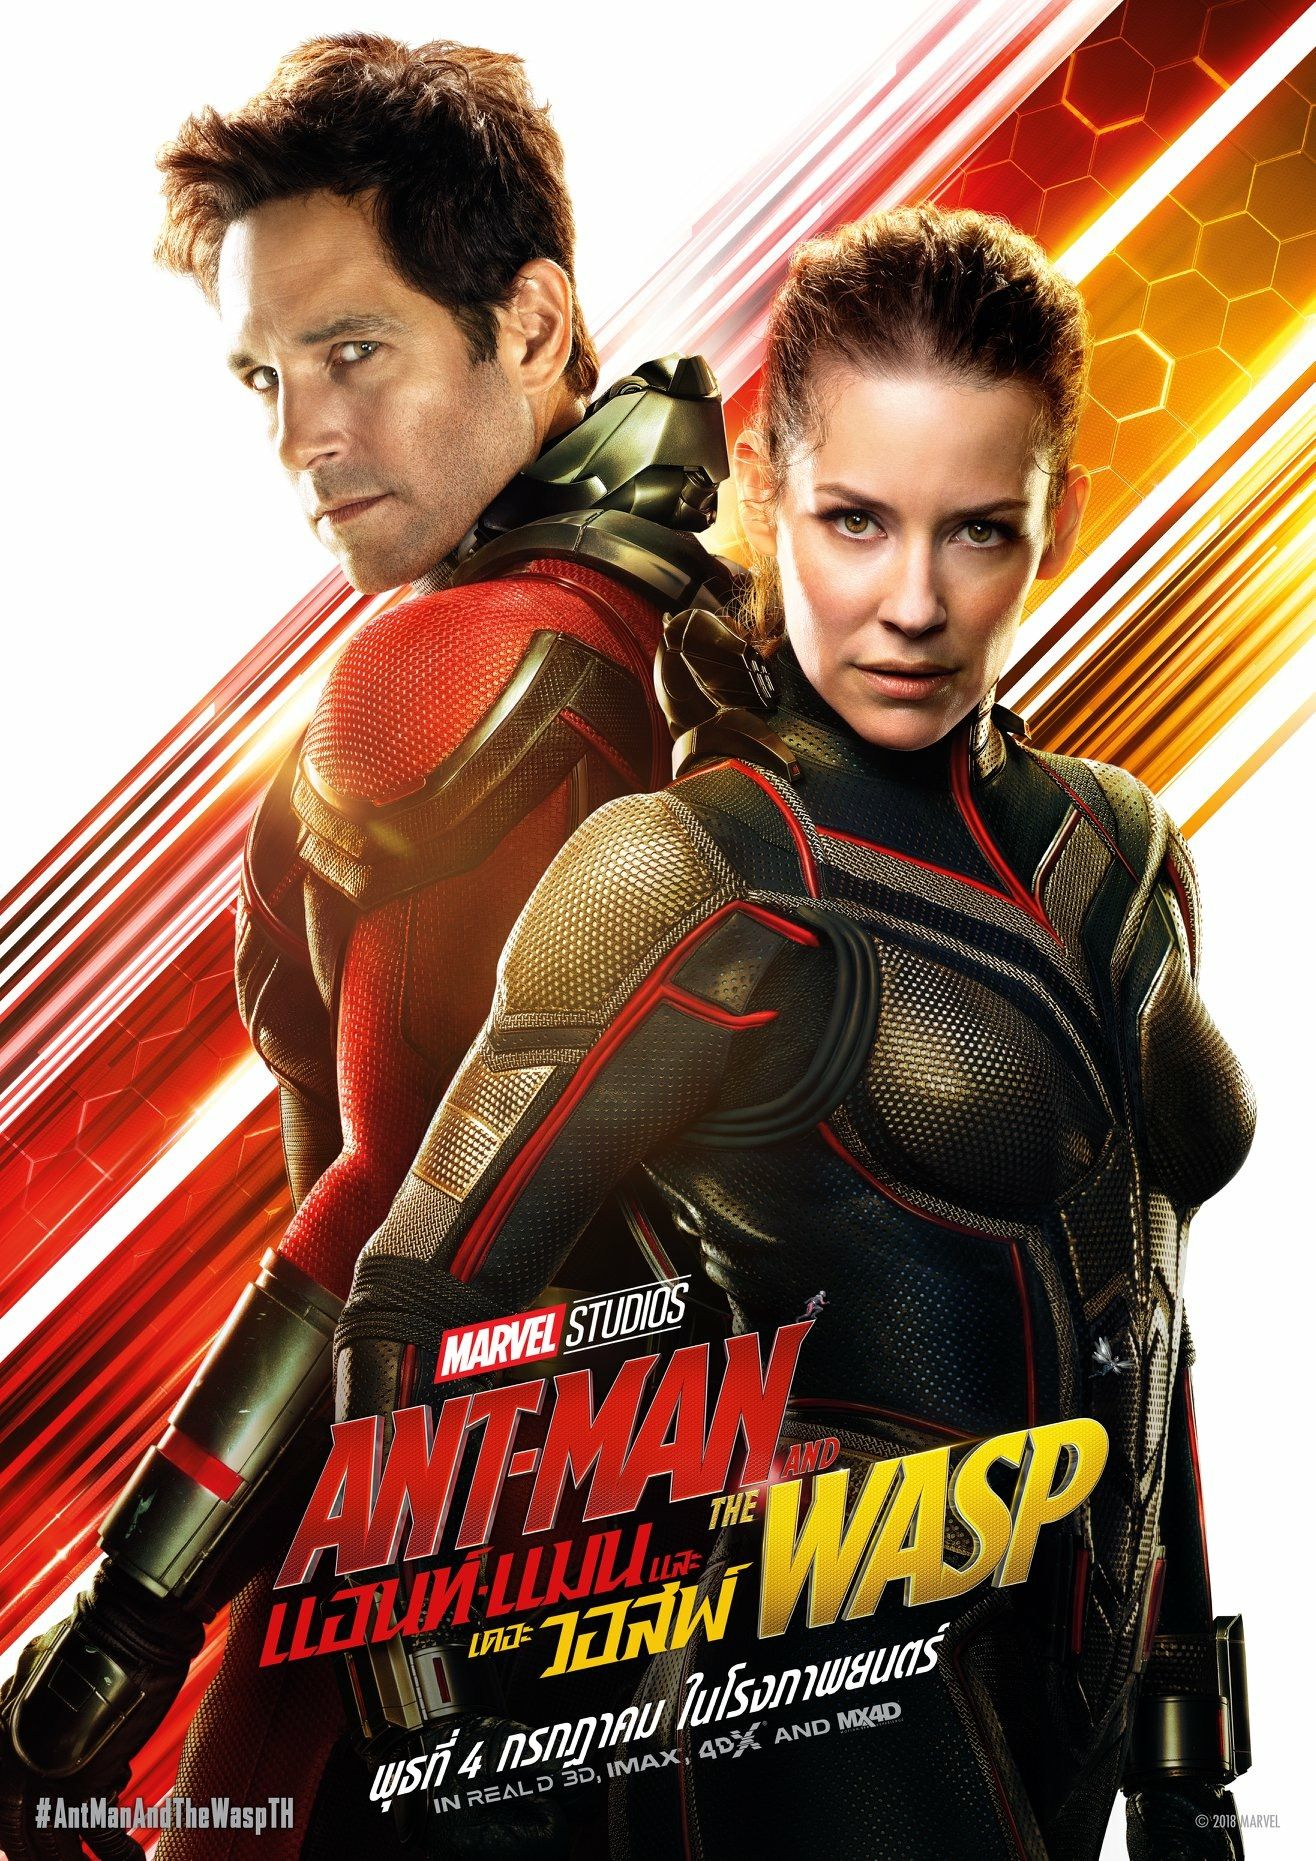 AntMan and the Wasp (With images) Wasp movie, Marvel